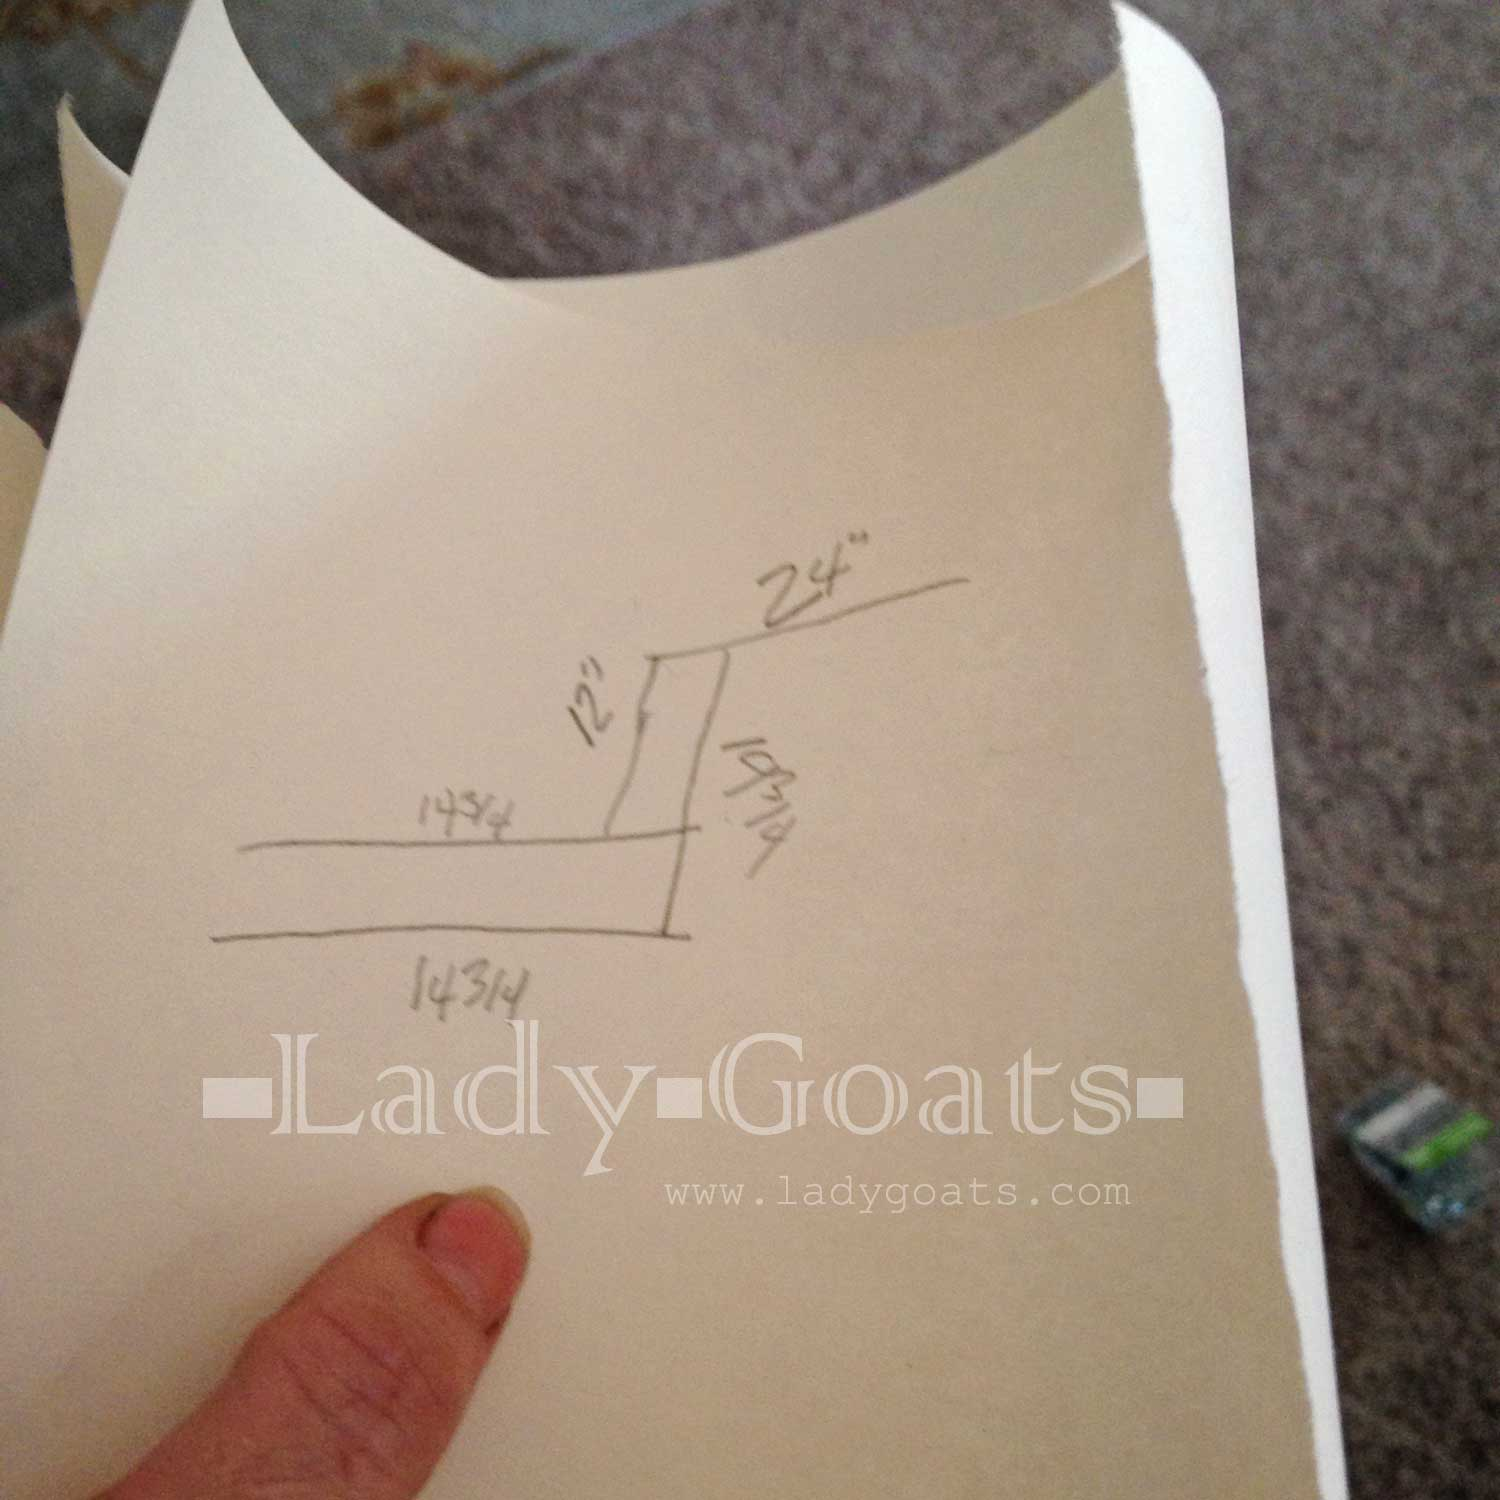 Lady goats updated diy ender dragon costume articulating wings any time you see boards that are parallel the holes for the bolts are drilled 4 apart mr goats got the general idea for how to do this here solutioingenieria Choice Image